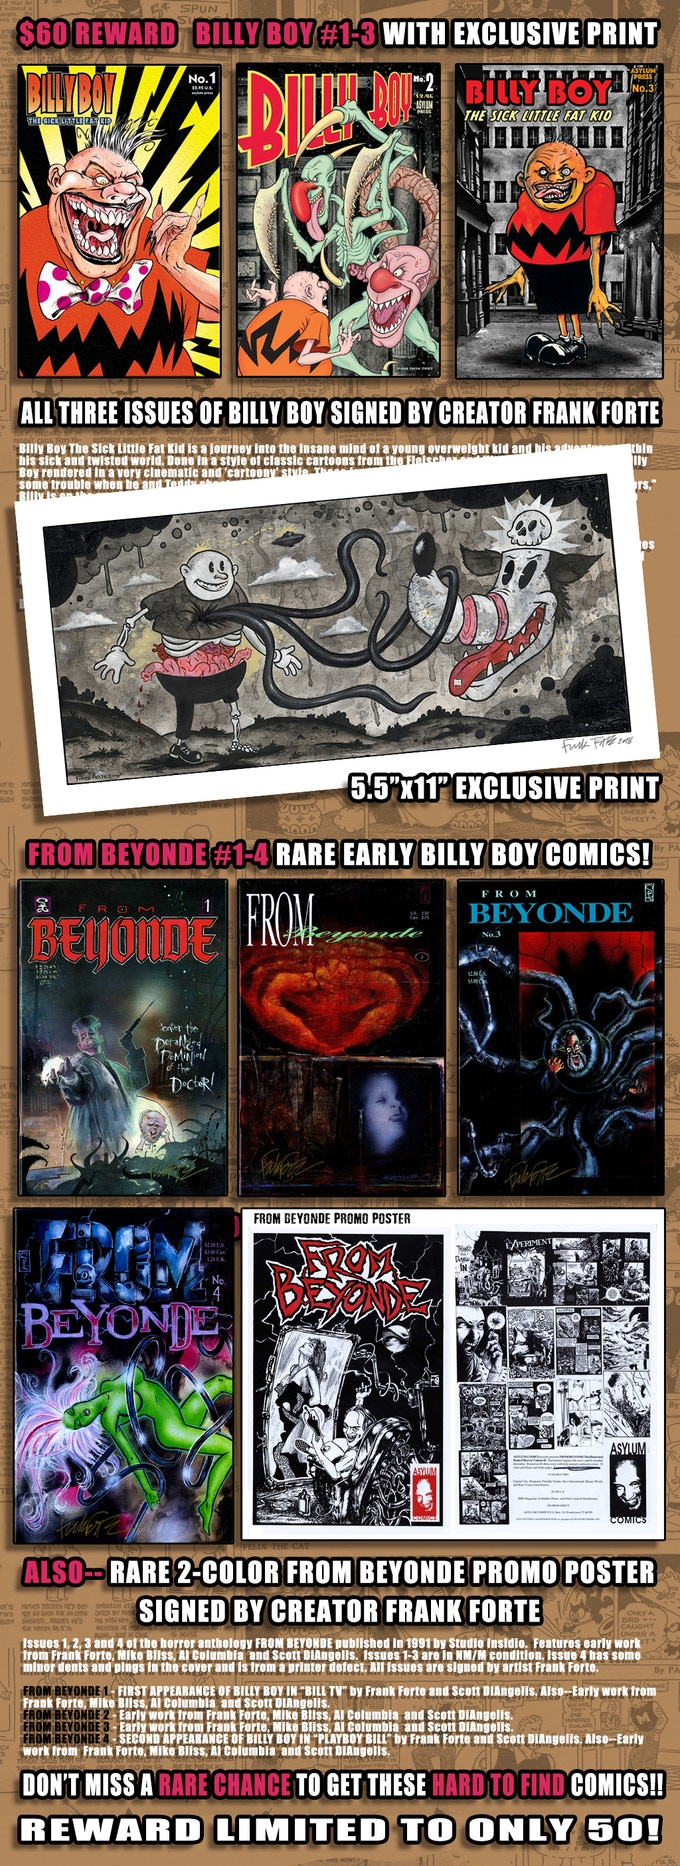 $60 REWARD-BILLY BOY 1-3, FROMBEYONDE 1-4 WITH PRINT AND POSTER